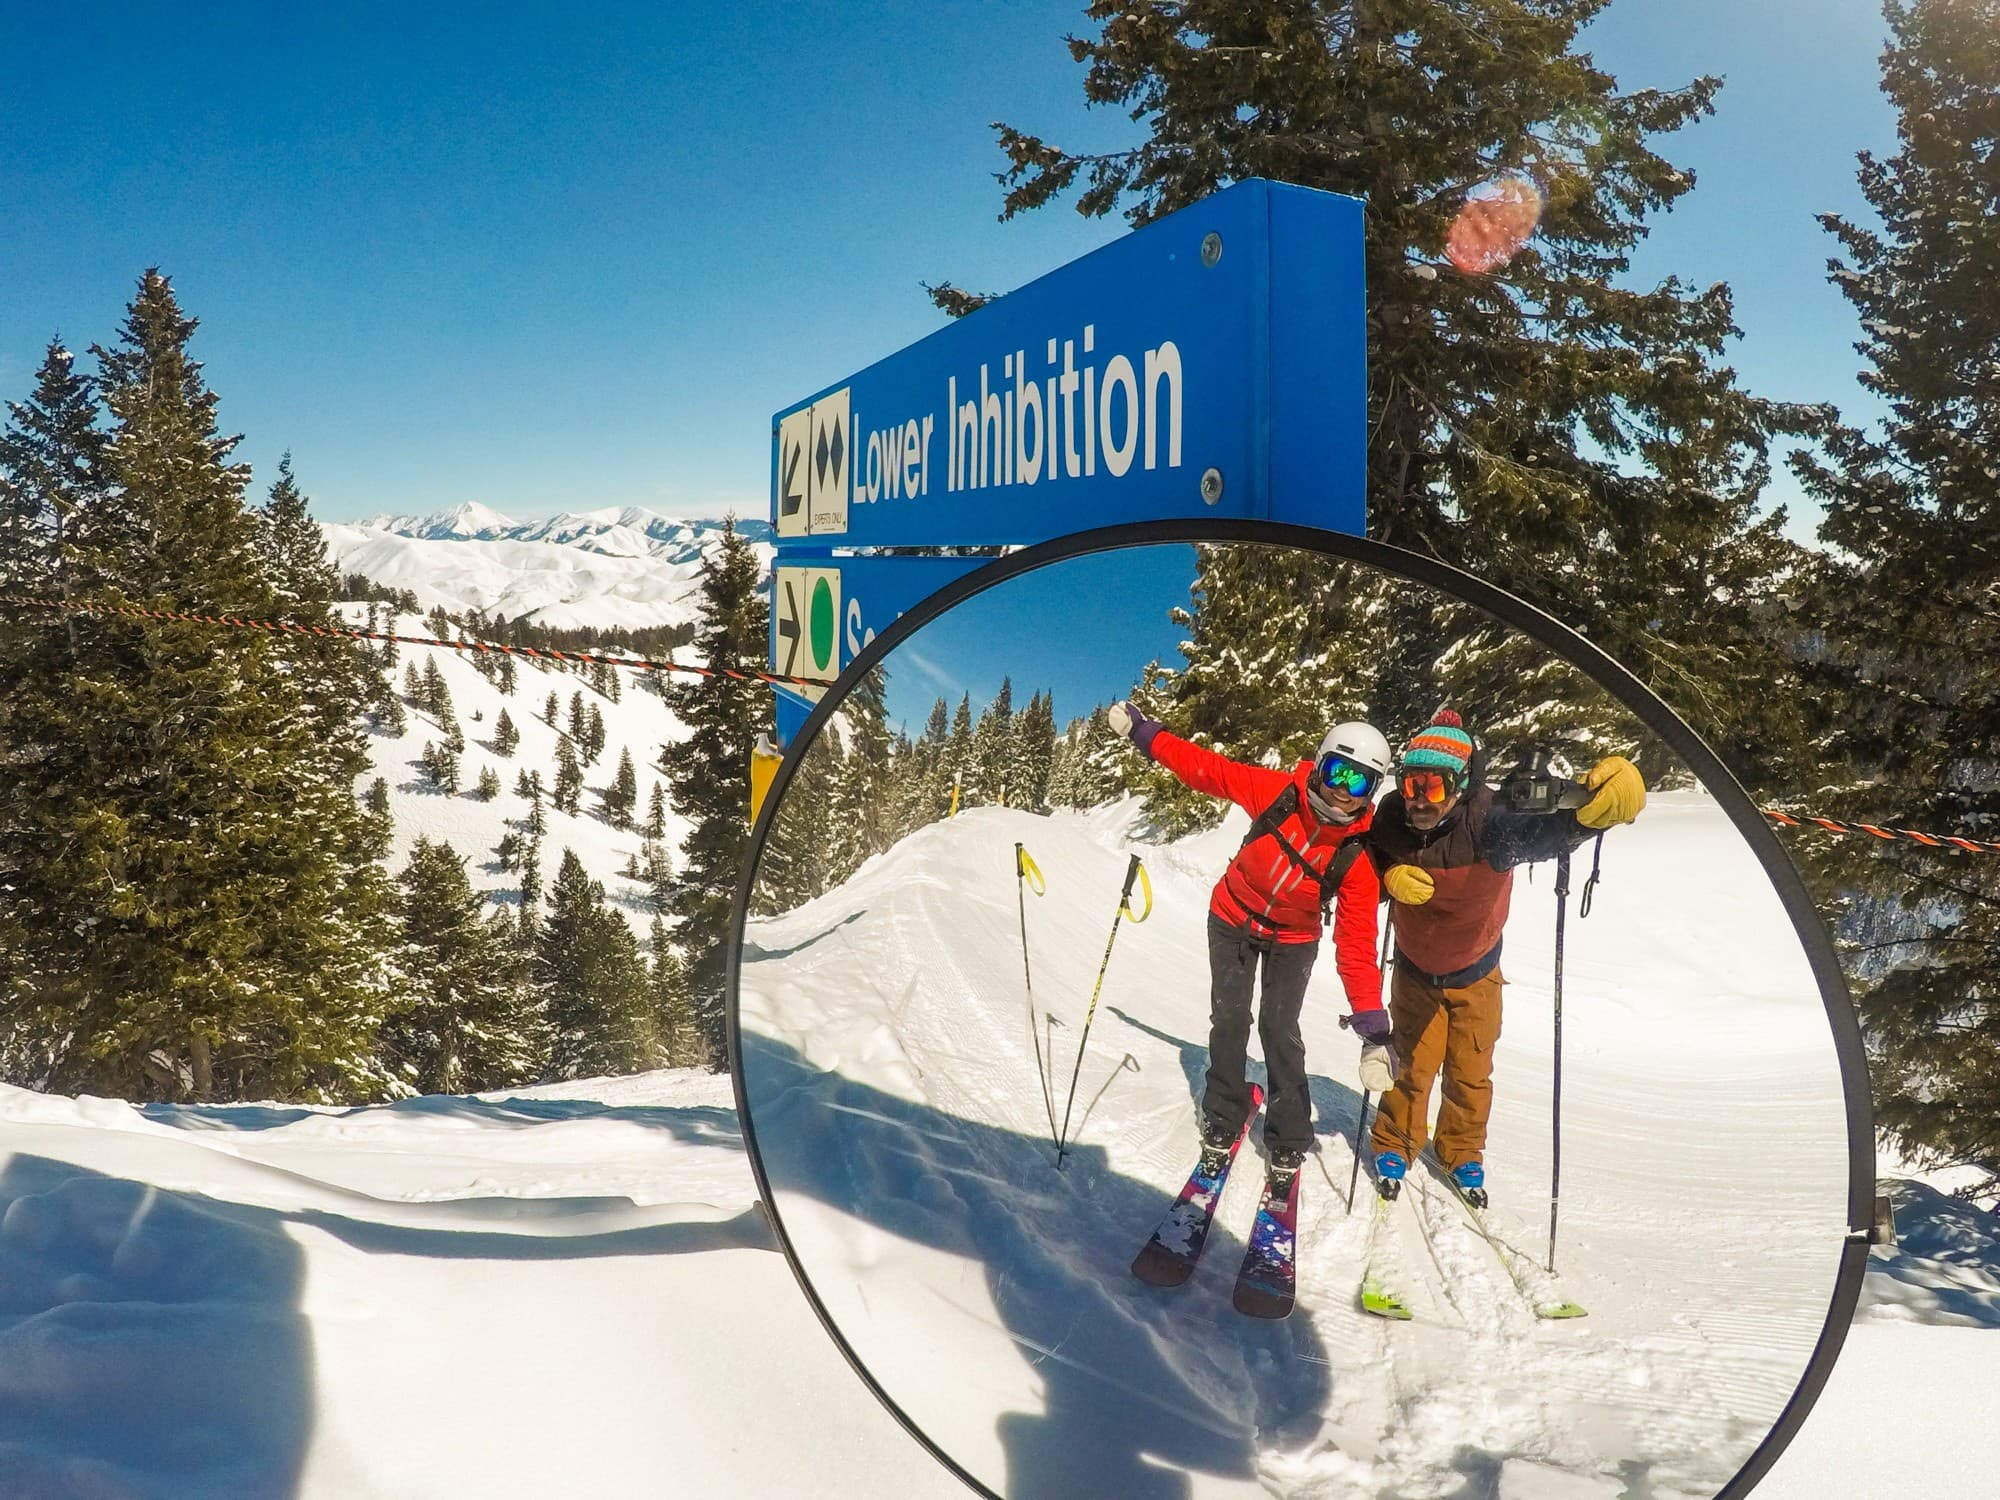 Learn how to score discount lift tickets and save money skiing with this list of our favorite tips, deals, and multi-resort ski passes.